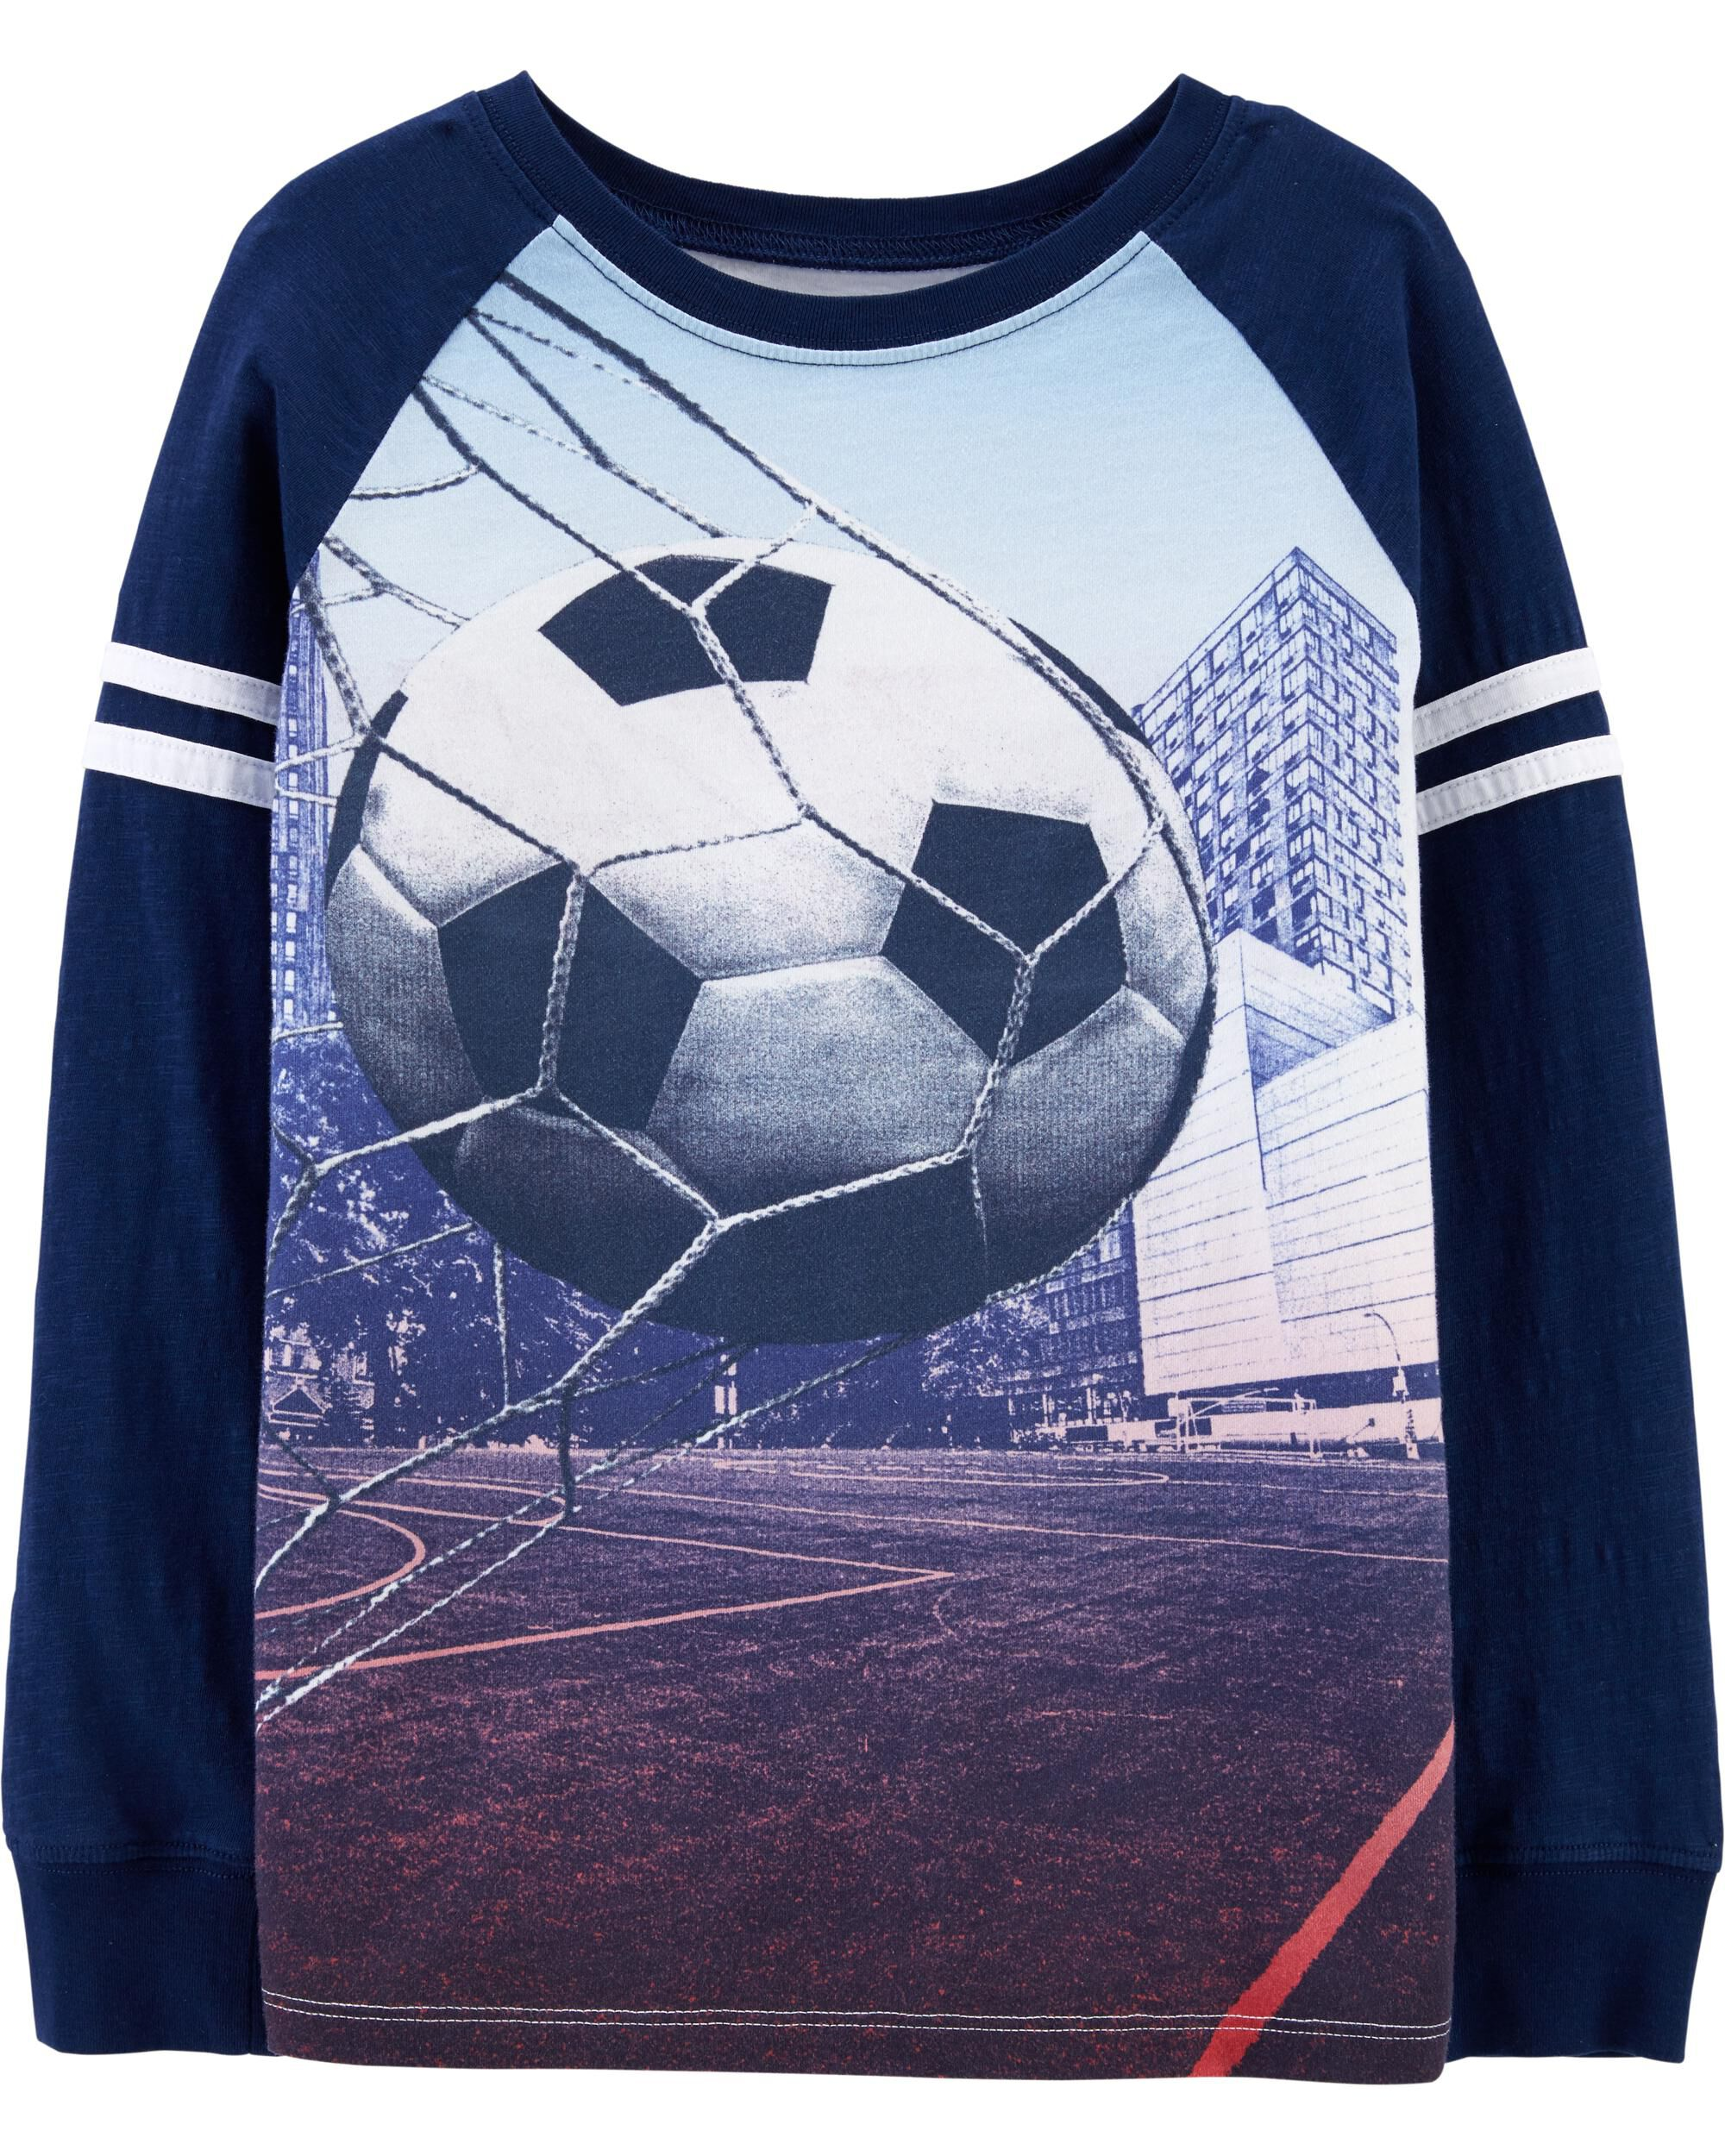 *Clearance*  Soccer Graphic Tee